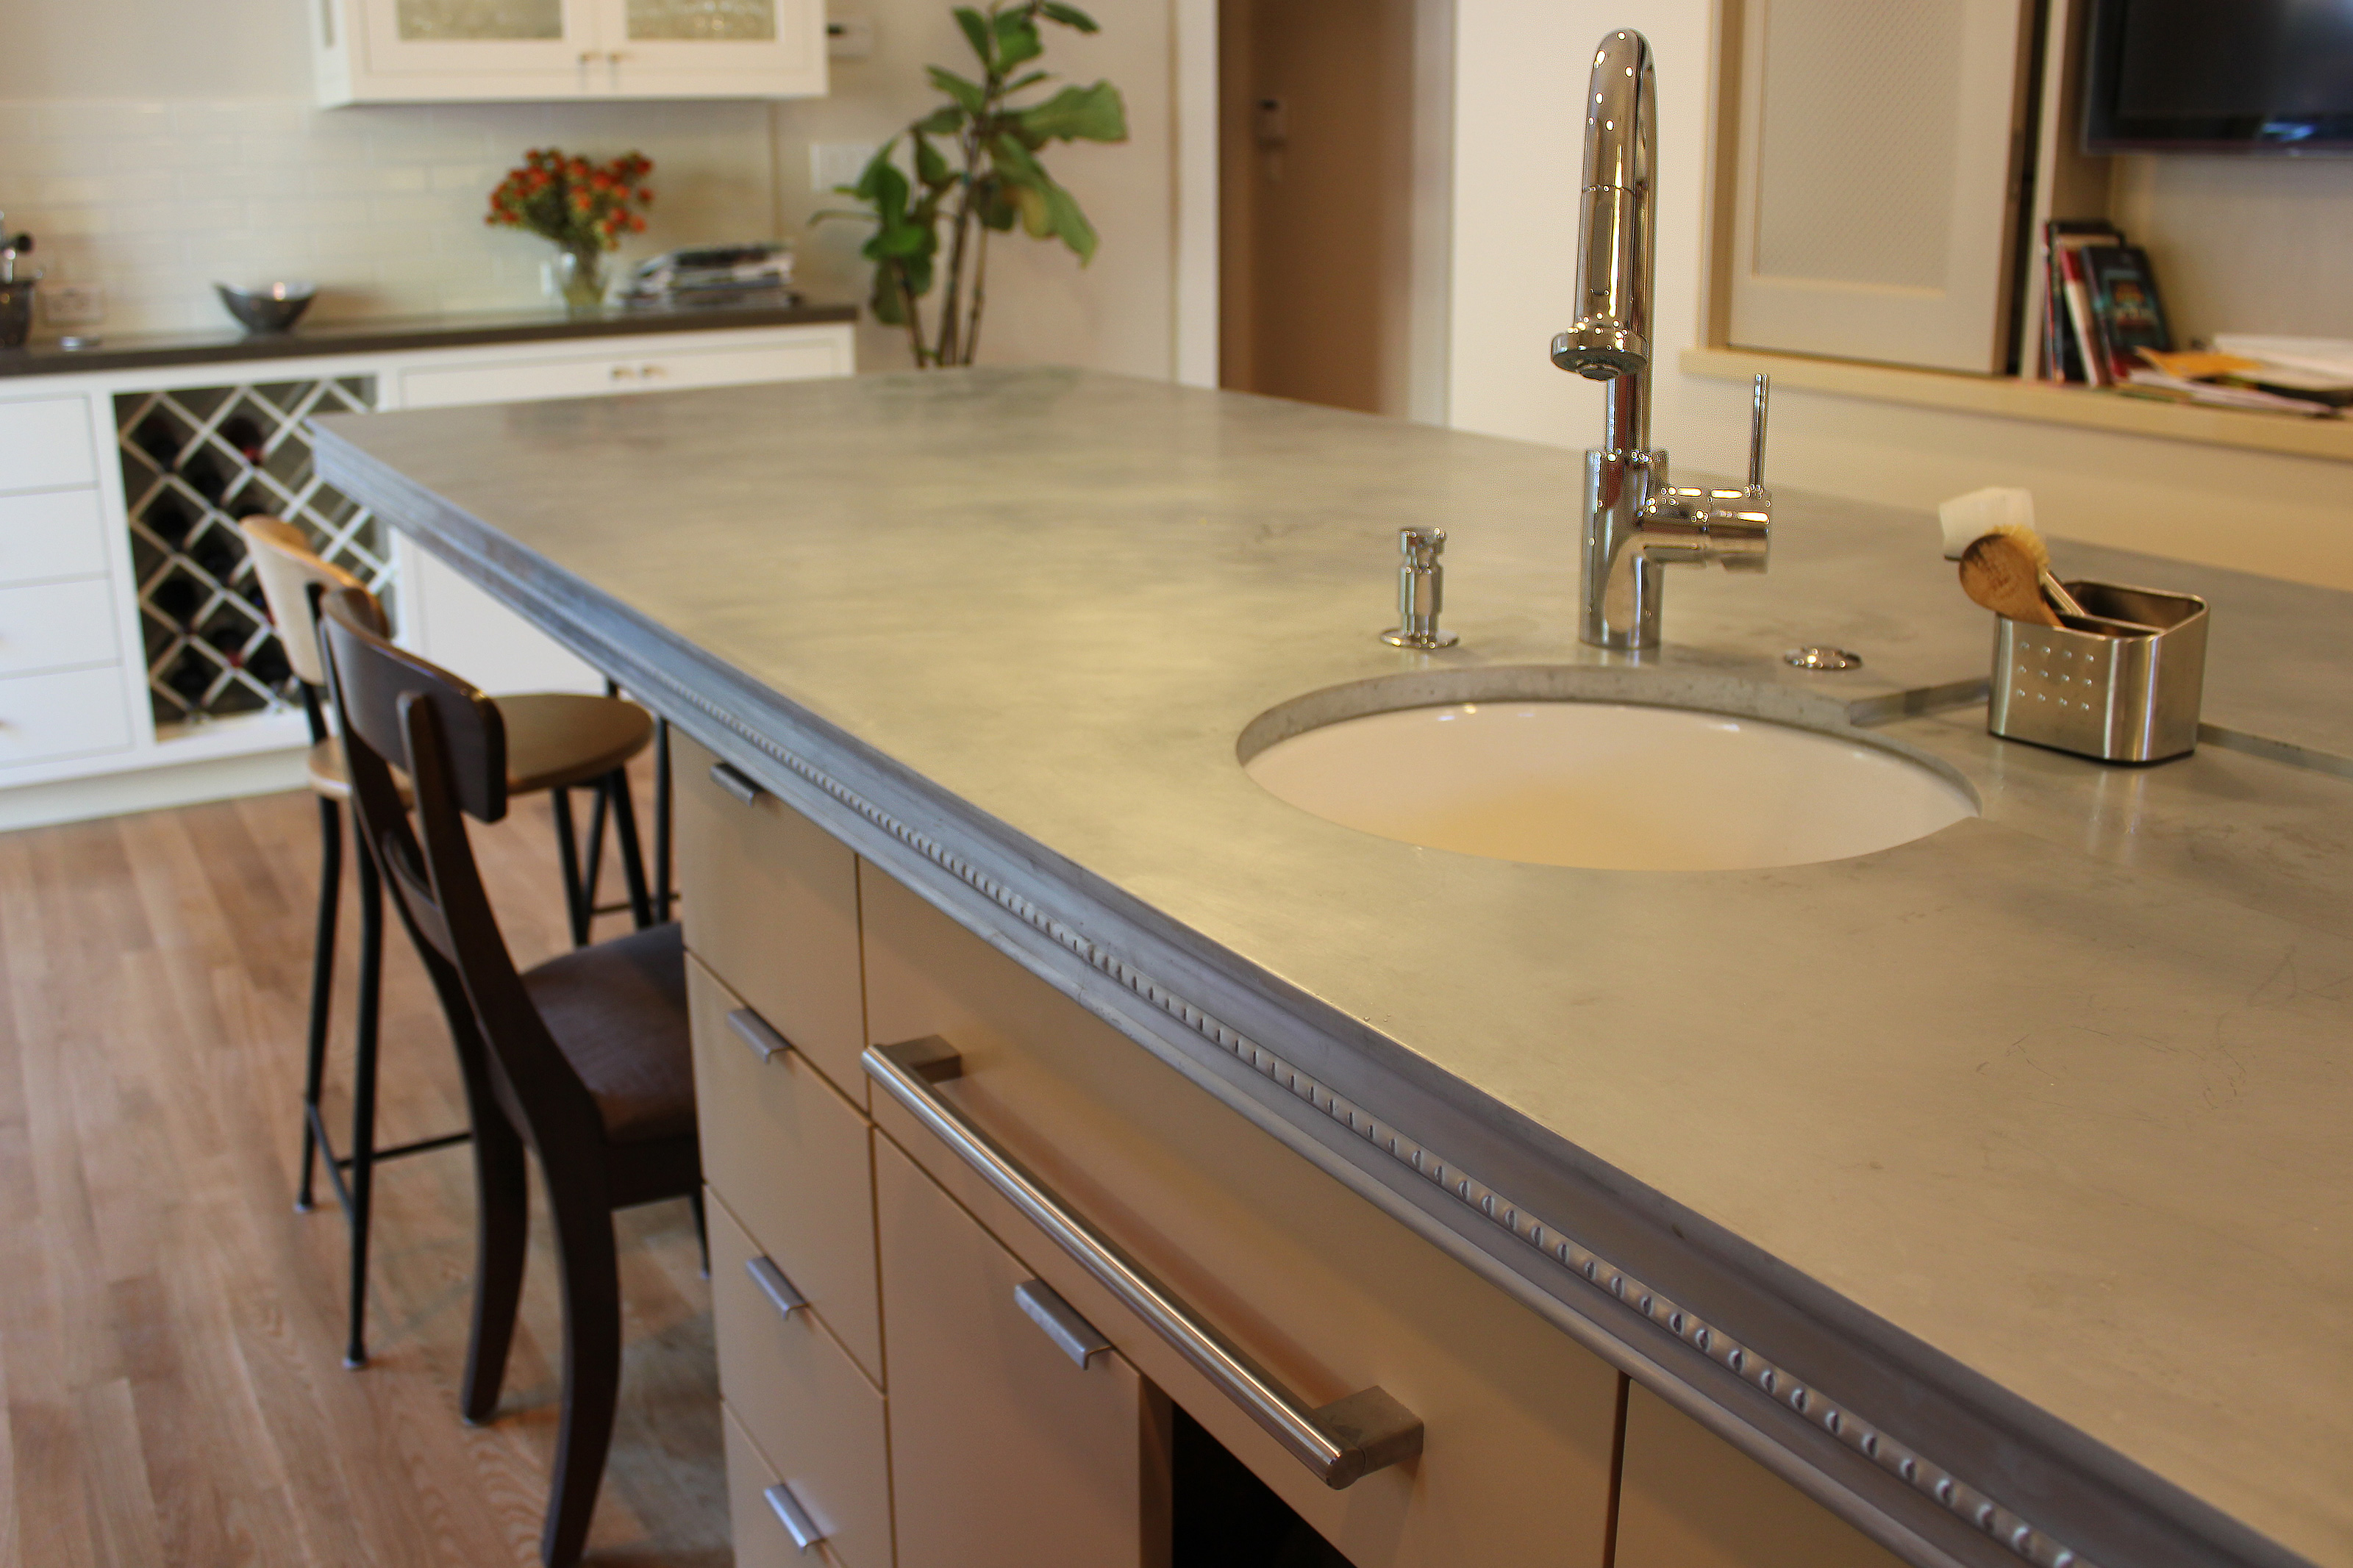 Zinc Countertops: Pros and Cons | Zinc Countertop Cost